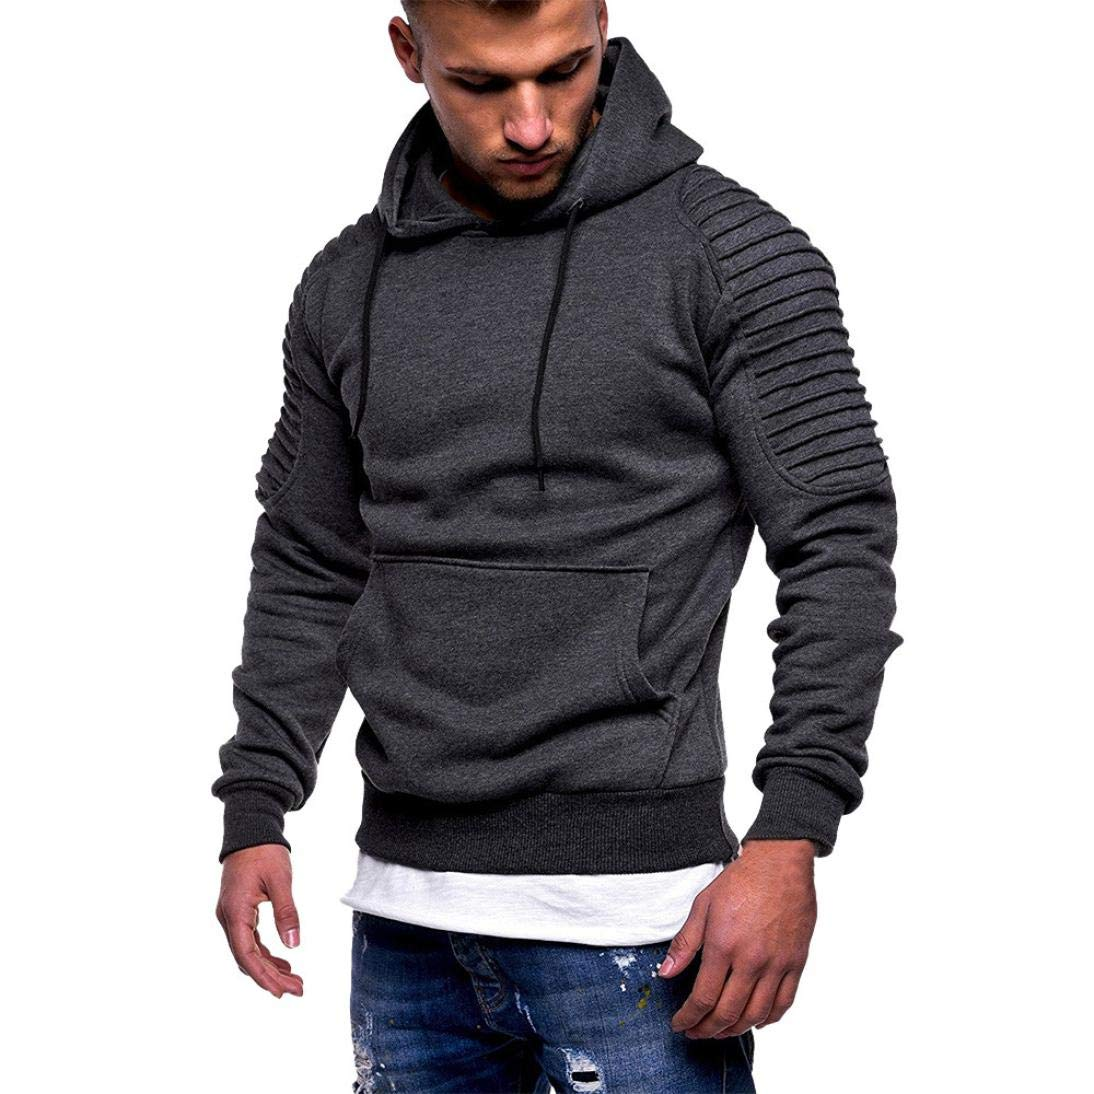 Autum Winter Long Sleeve Pocket Patchwork Hooded Mens' Sweatshirt Tops Premium Quality Fleece Outwear (Dark Gray, M)